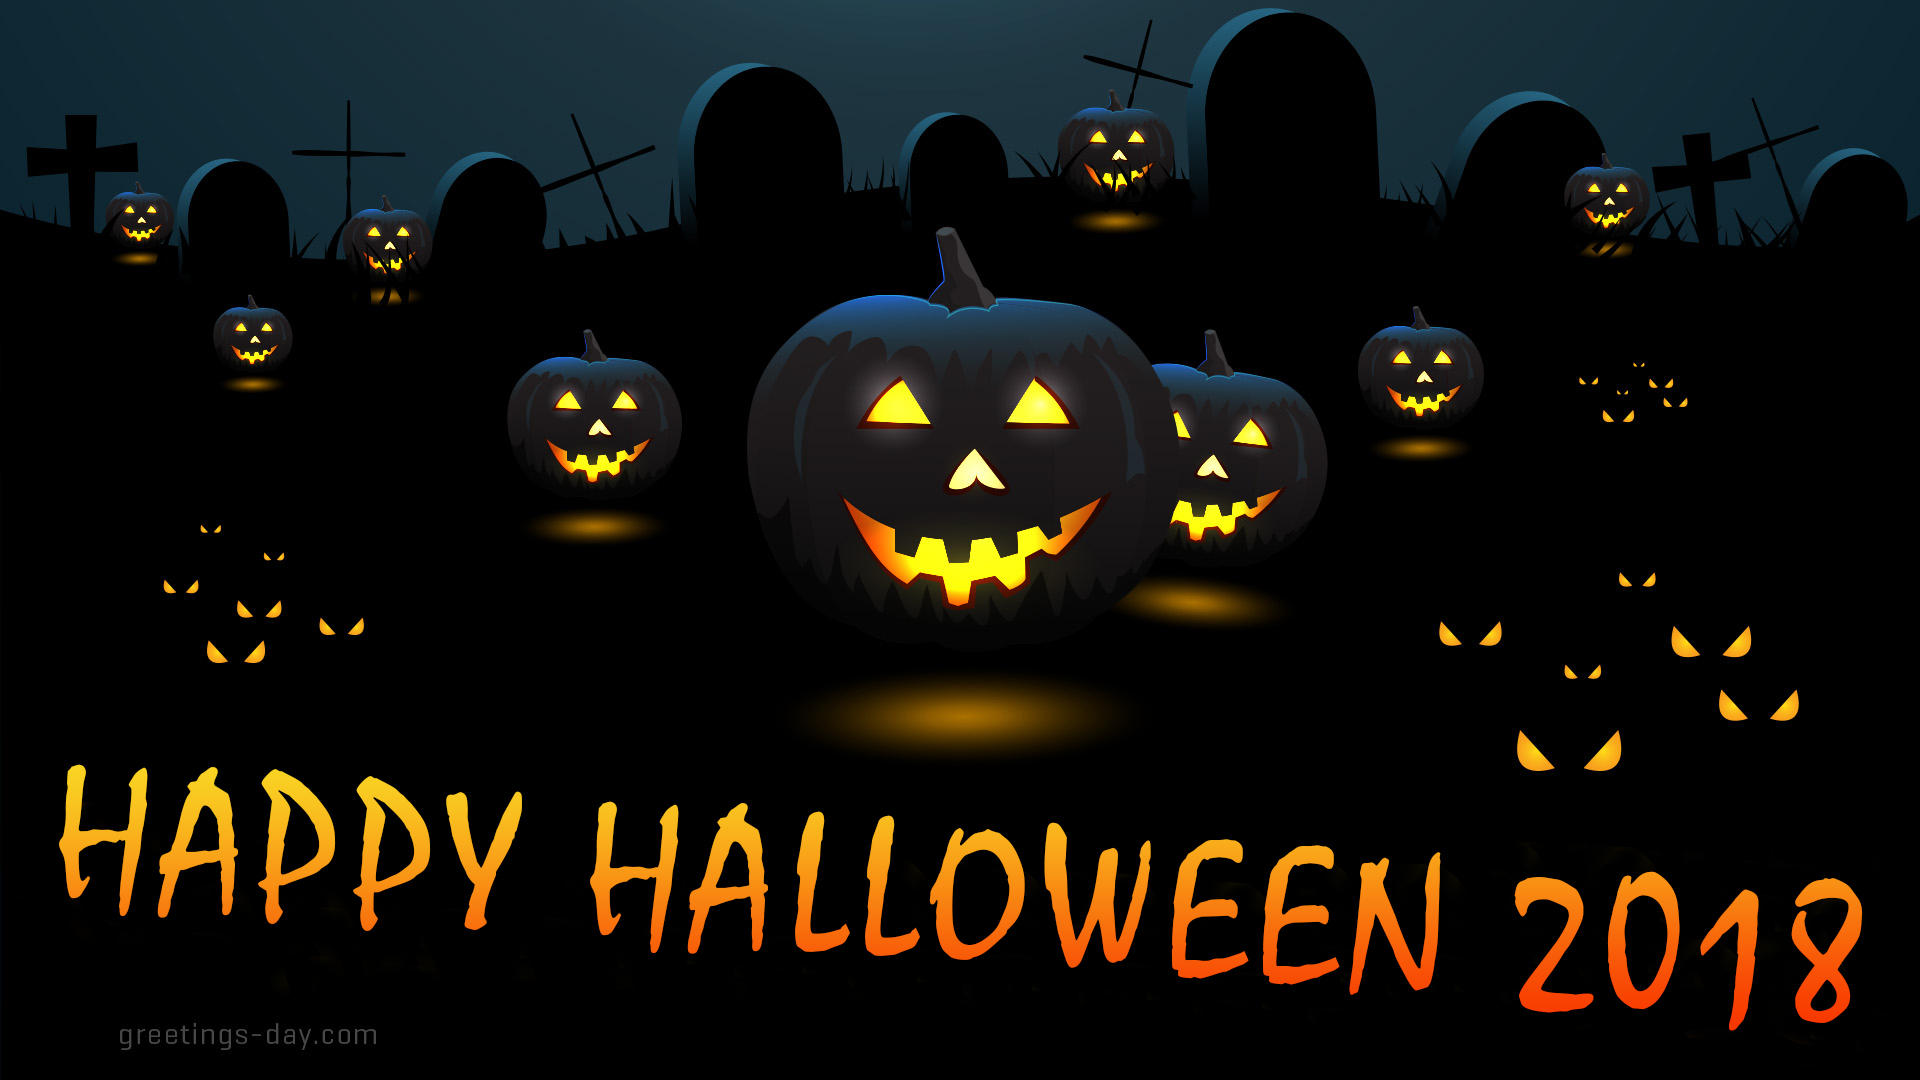 Halloween Desktop Wallpaper.